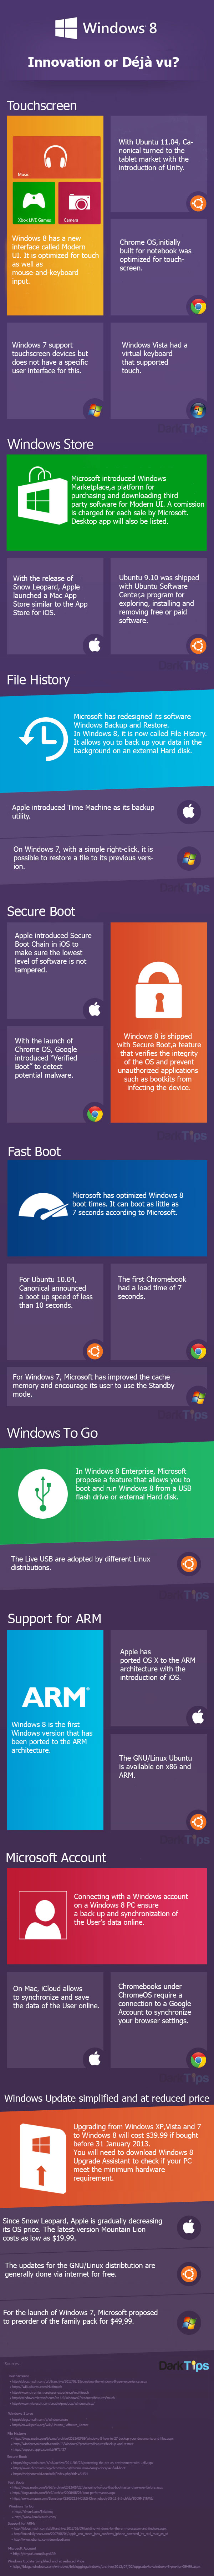 Windows 8 Doubts-Infographic